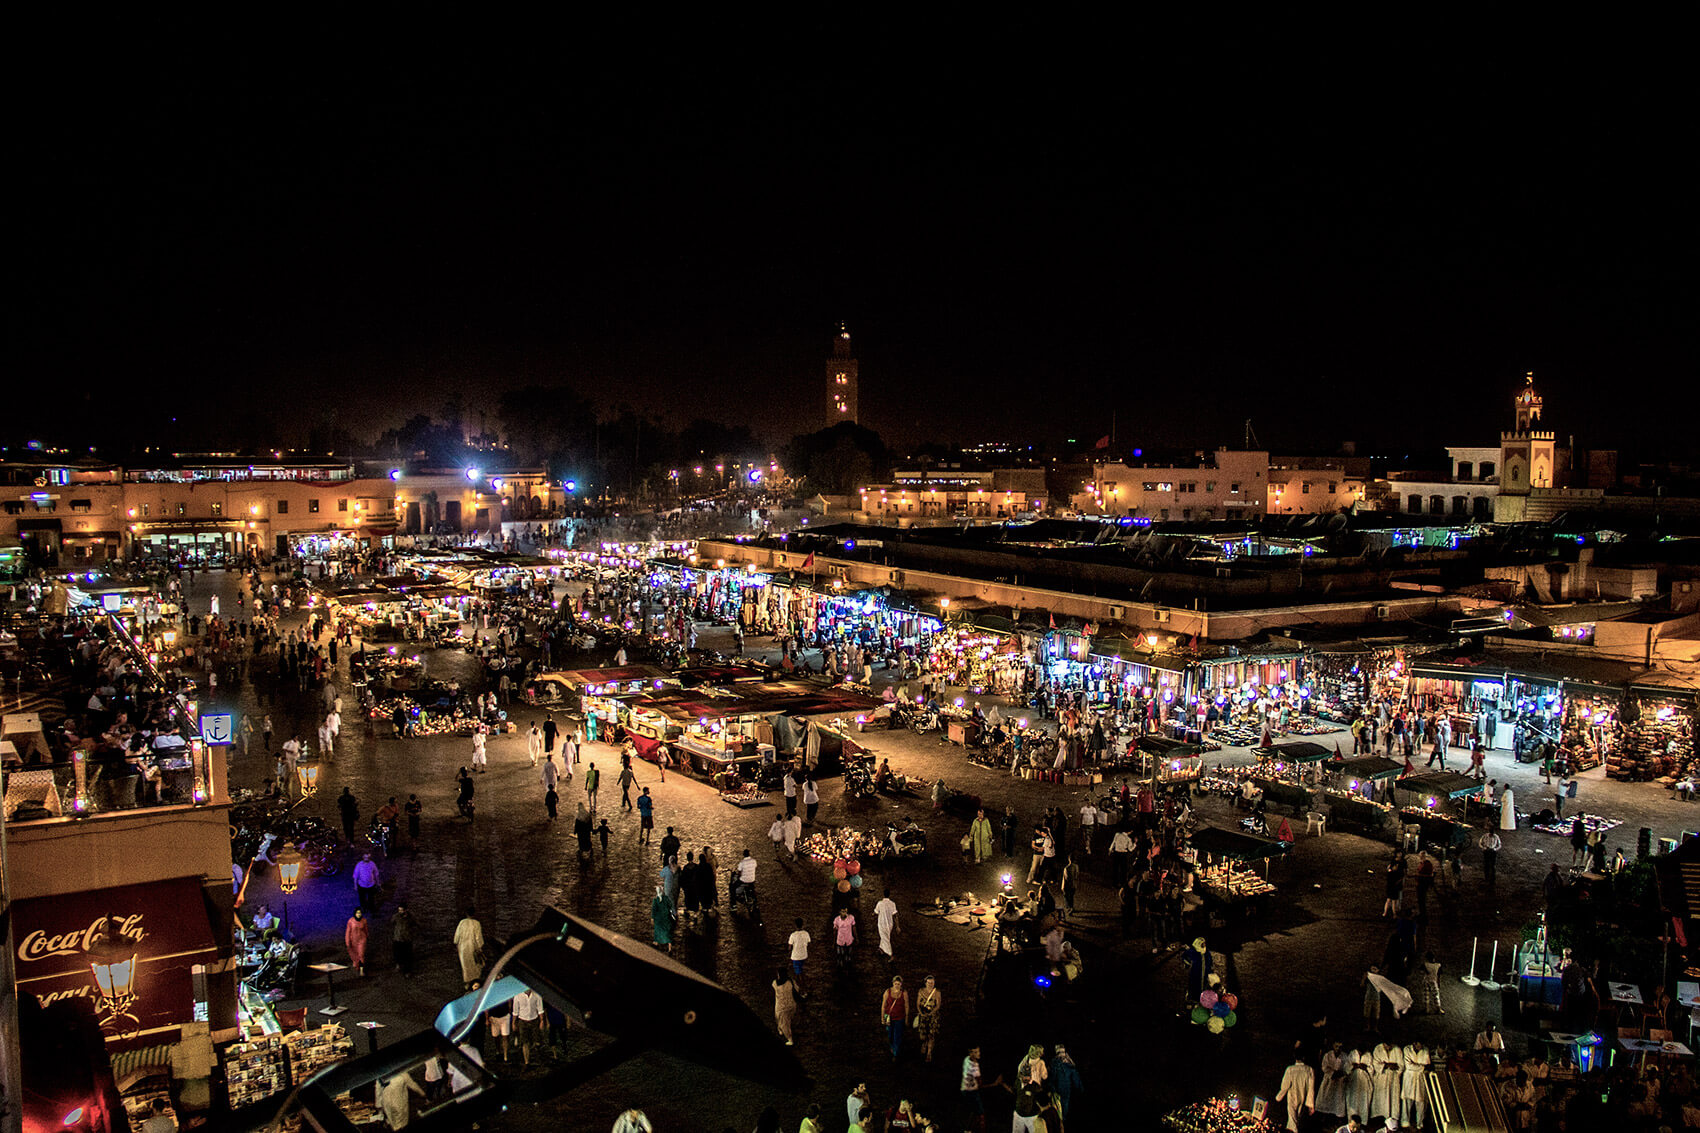 Jemma El Fna in Marrakech at night